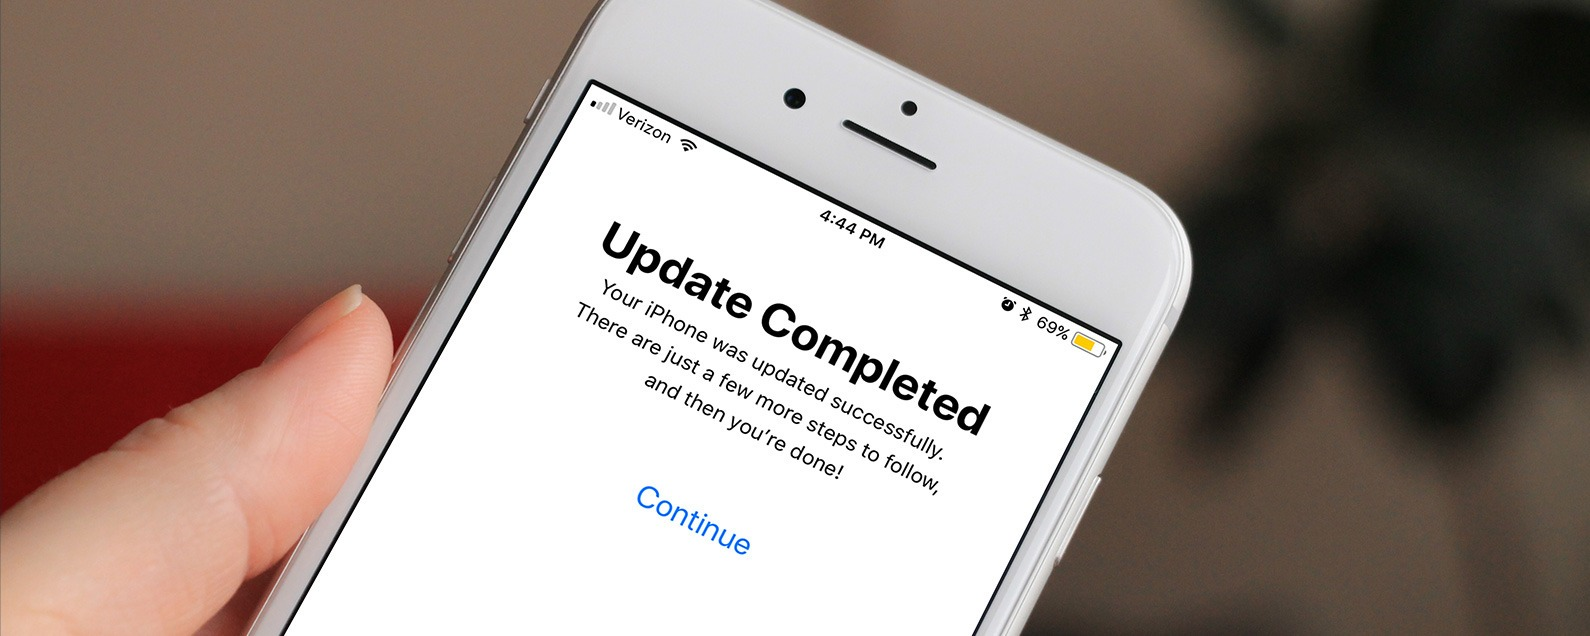 How to Update to iOS 11 on iPhone & iPad